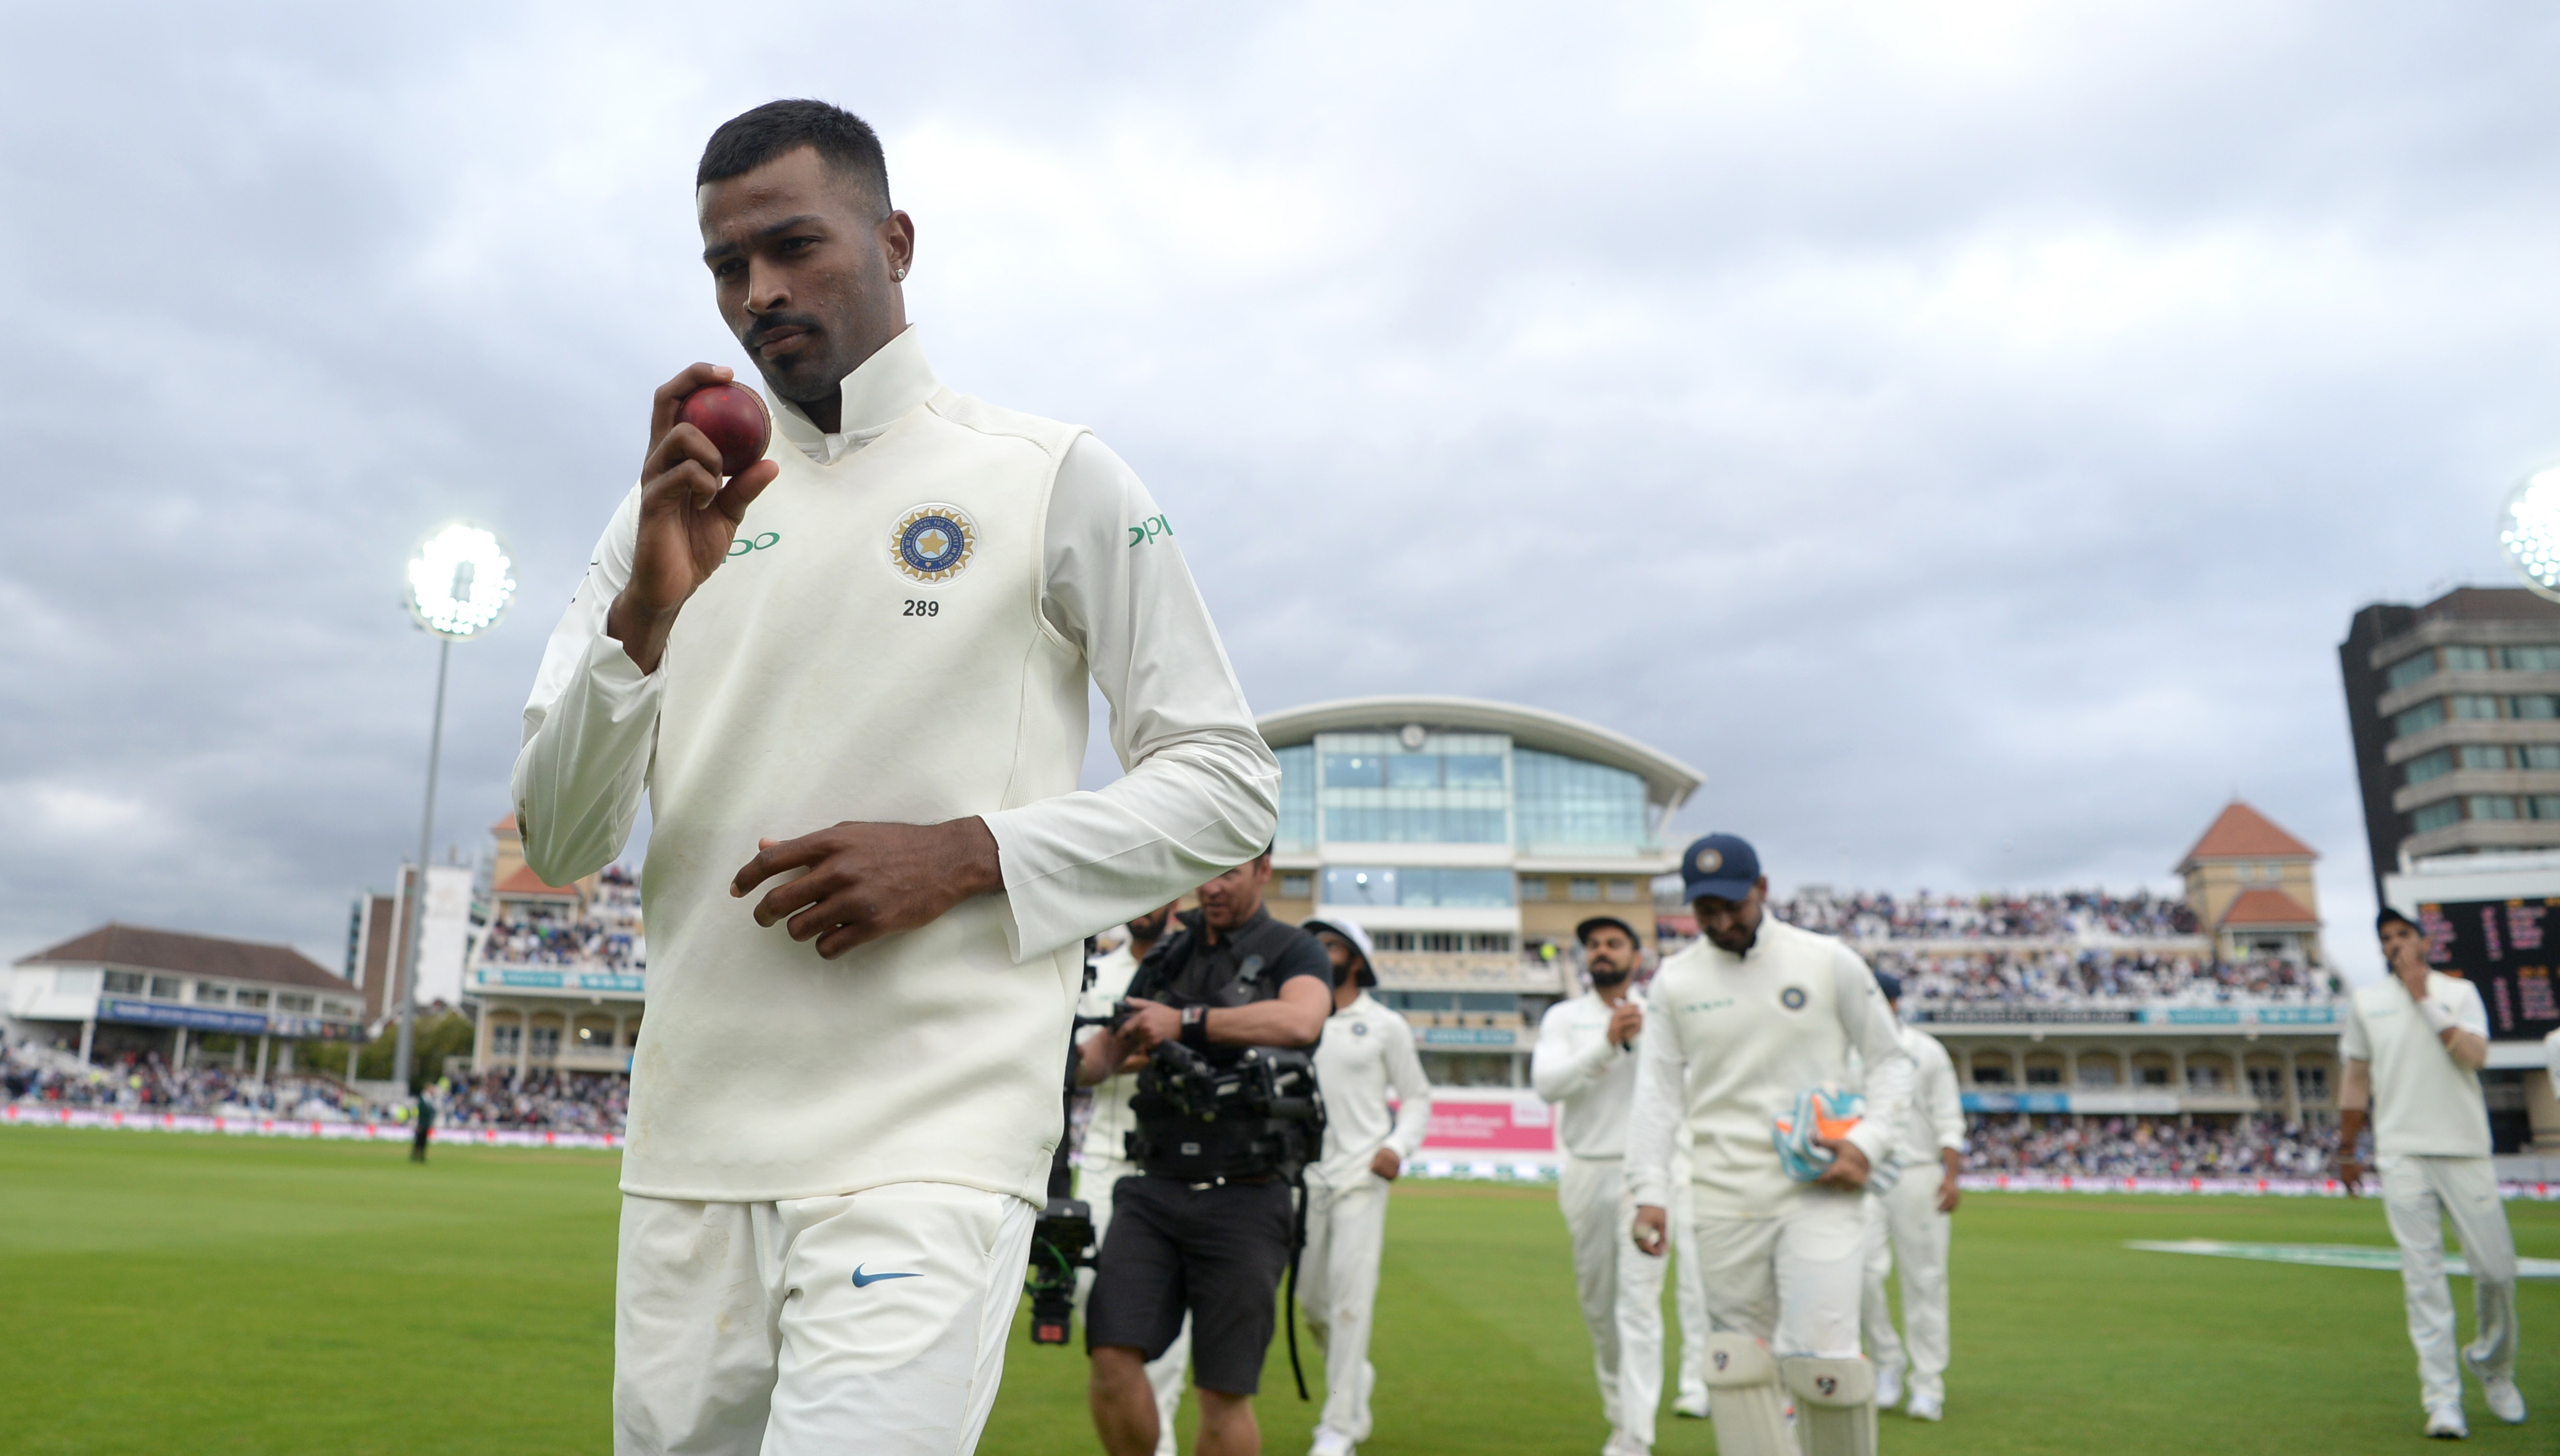 Despite his performance at Trent Bridge, Hardik Pandya remains a work in progress at the Test level. | Getty